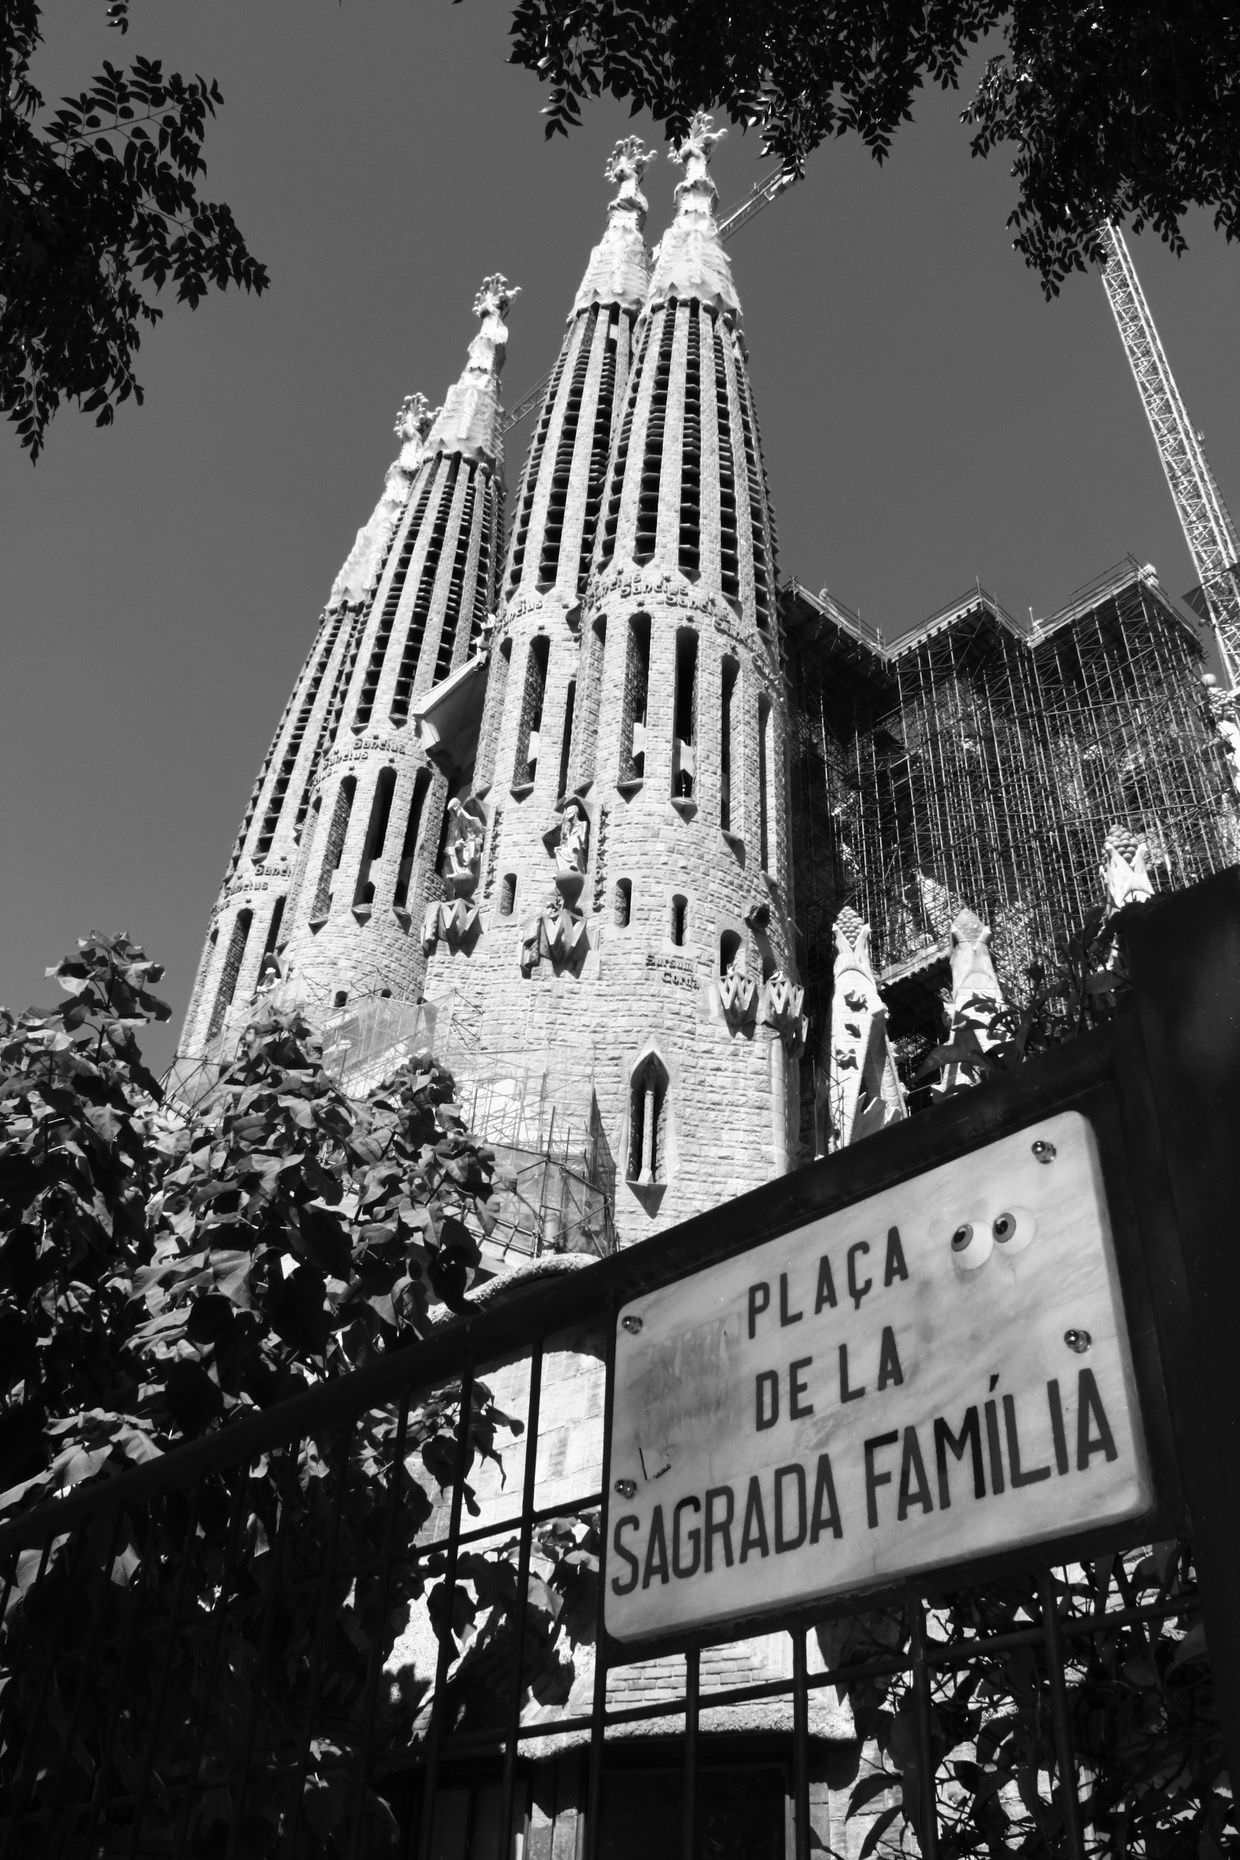 La Sagrada Família in black and white